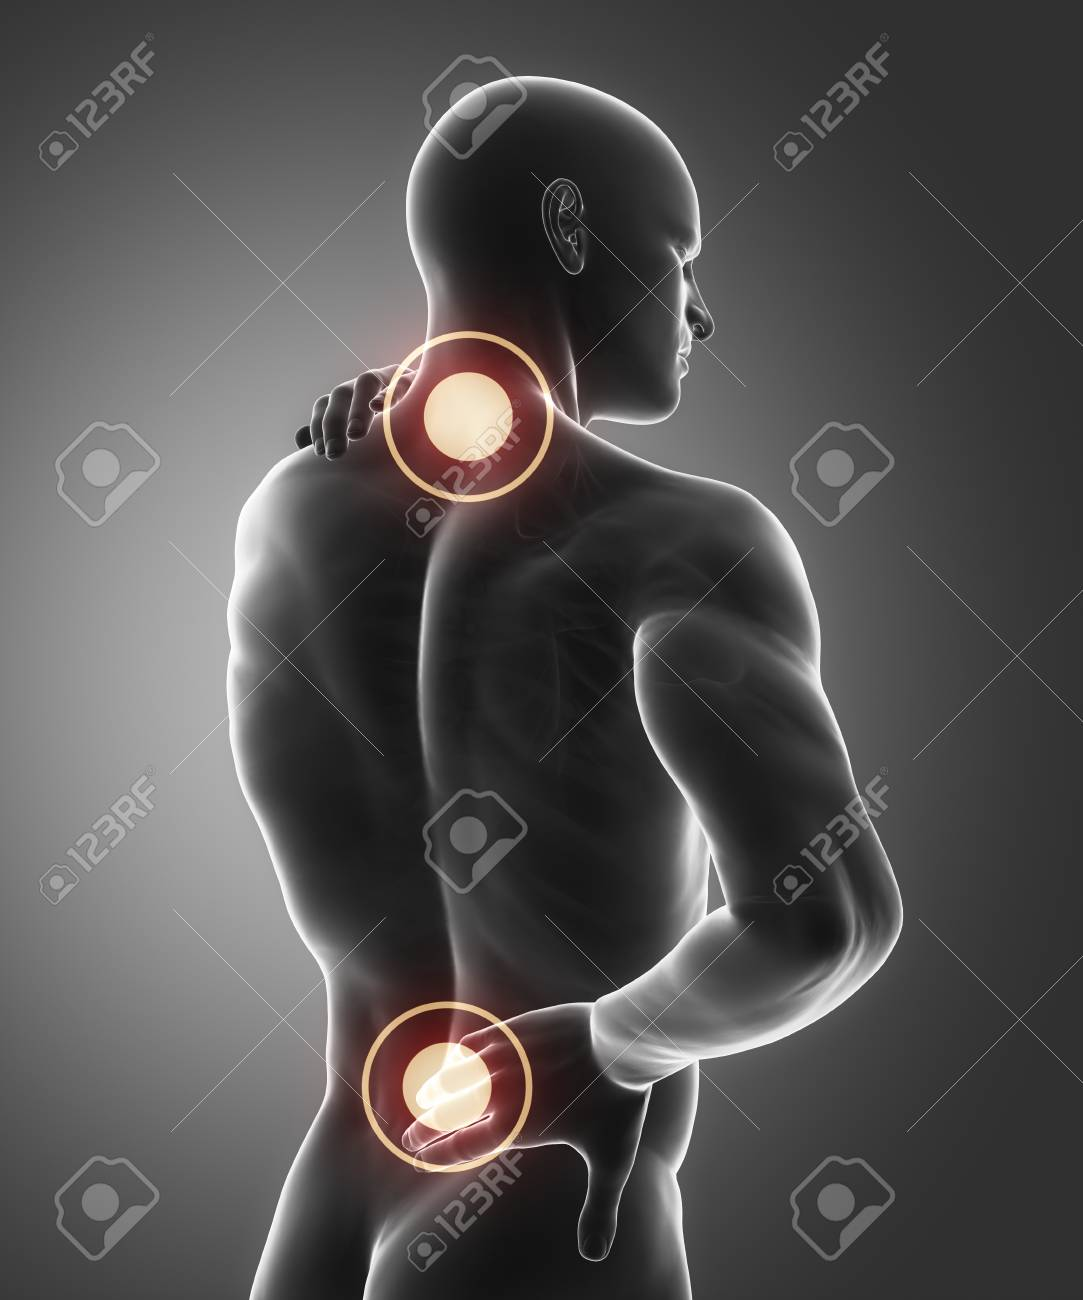 Spine Injury Pain In Sacral And Cervical Region Concept Stock Photo